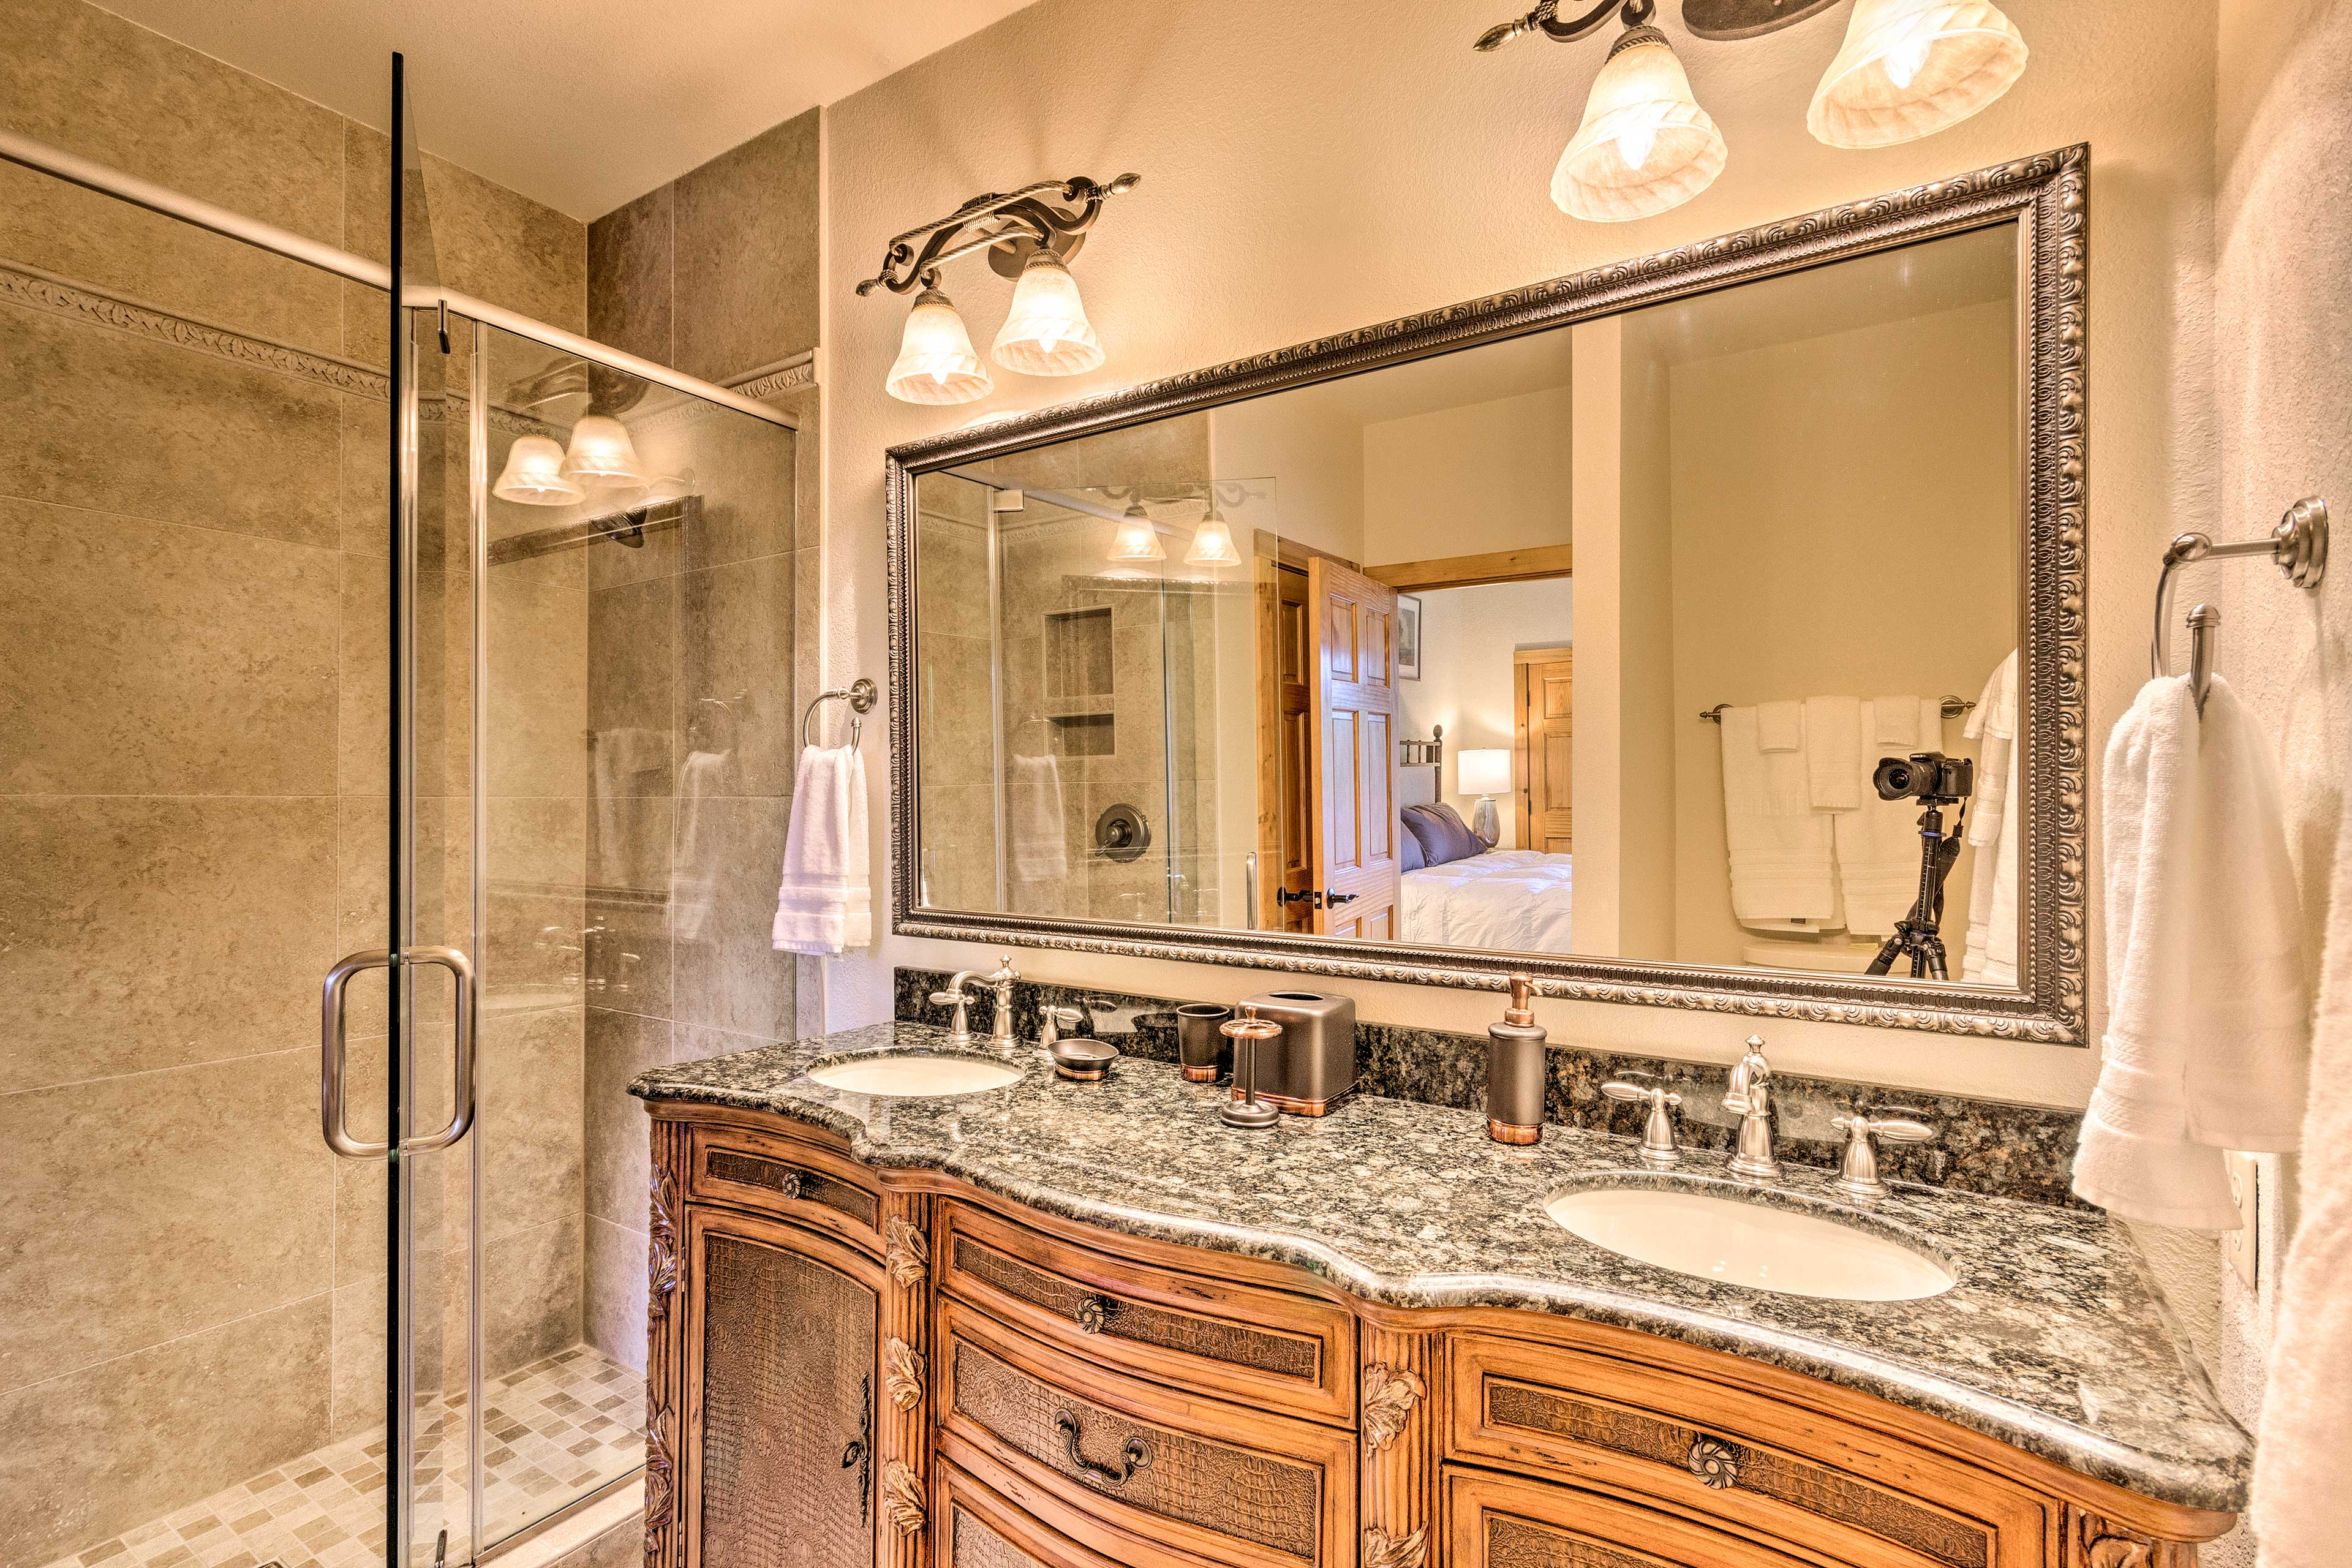 Dual sinks and a walk-in shower make getting ready a breeze!